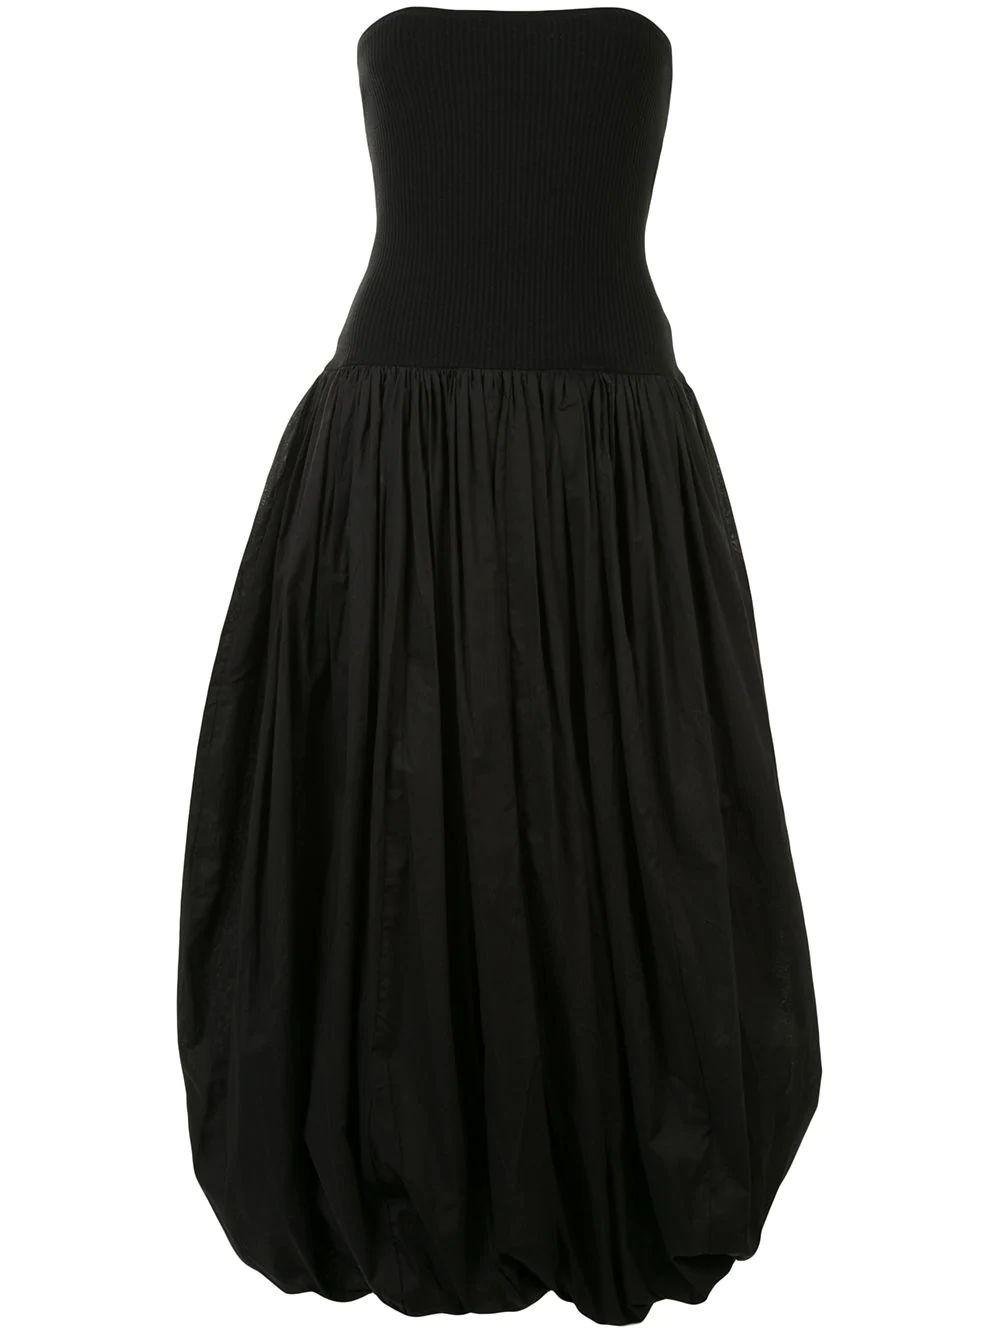 Double Take Strapless Dress Item # DR-819-349-2